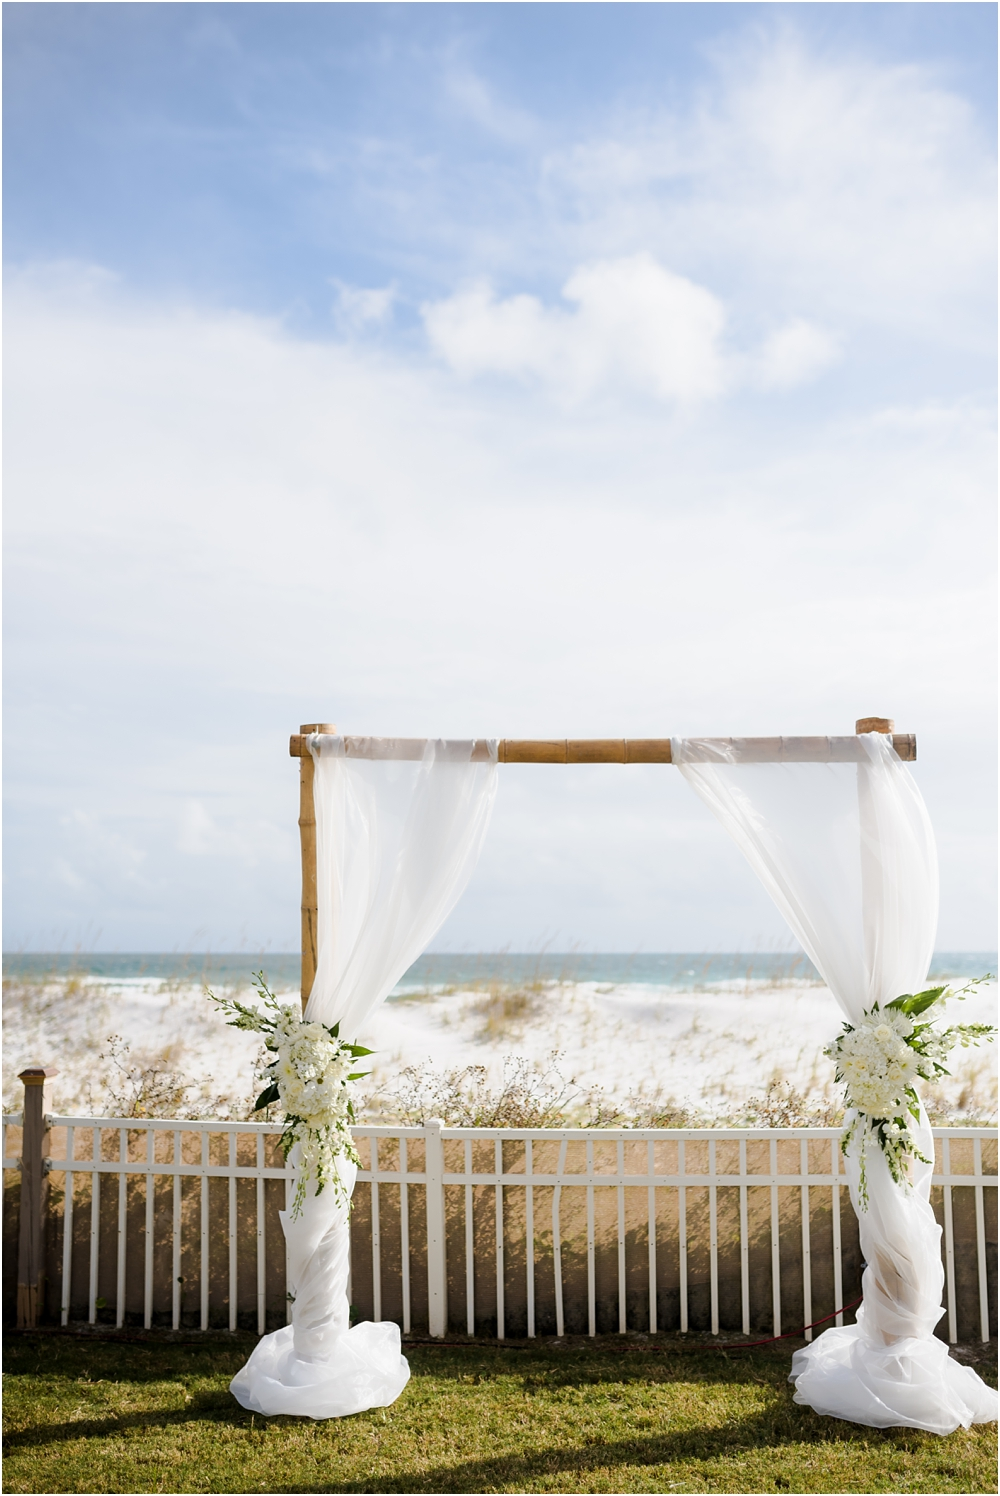 dillard-florida-wedding-photographer-panama-city-beach-dothan-tallahassee-kiersten-grant-photography-75.jpg